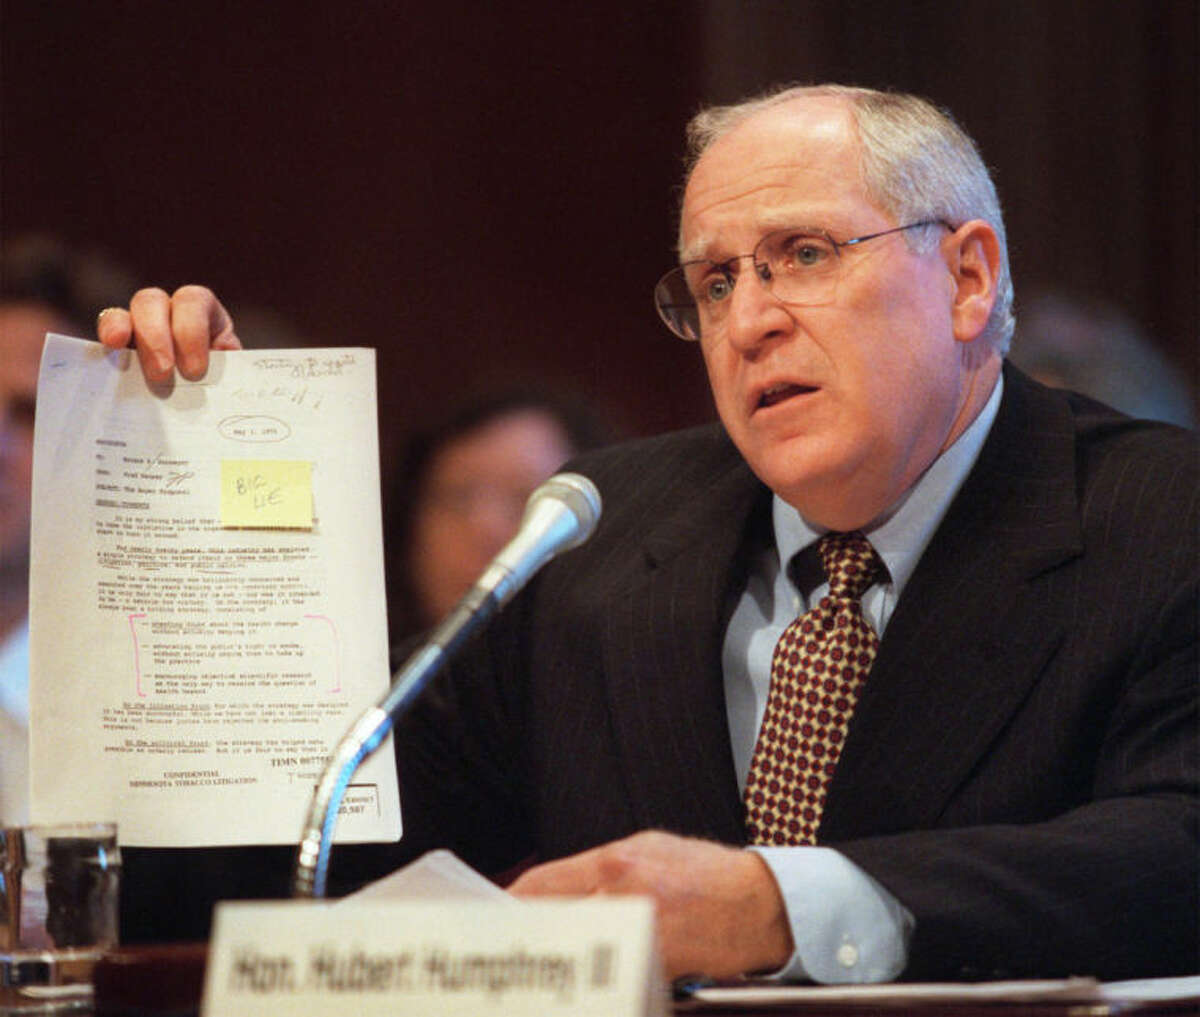 FILE - In this Thursday, May 14, 1998 file photo, Minnesota Attorney General Hubert Humphrey III holds an internal RJR document stating that tobacco causes lung cancer, while testifying on Capitol Hill in Washington before the Democratic Tobacco Task Force. (AP Photo/Khue Bui)